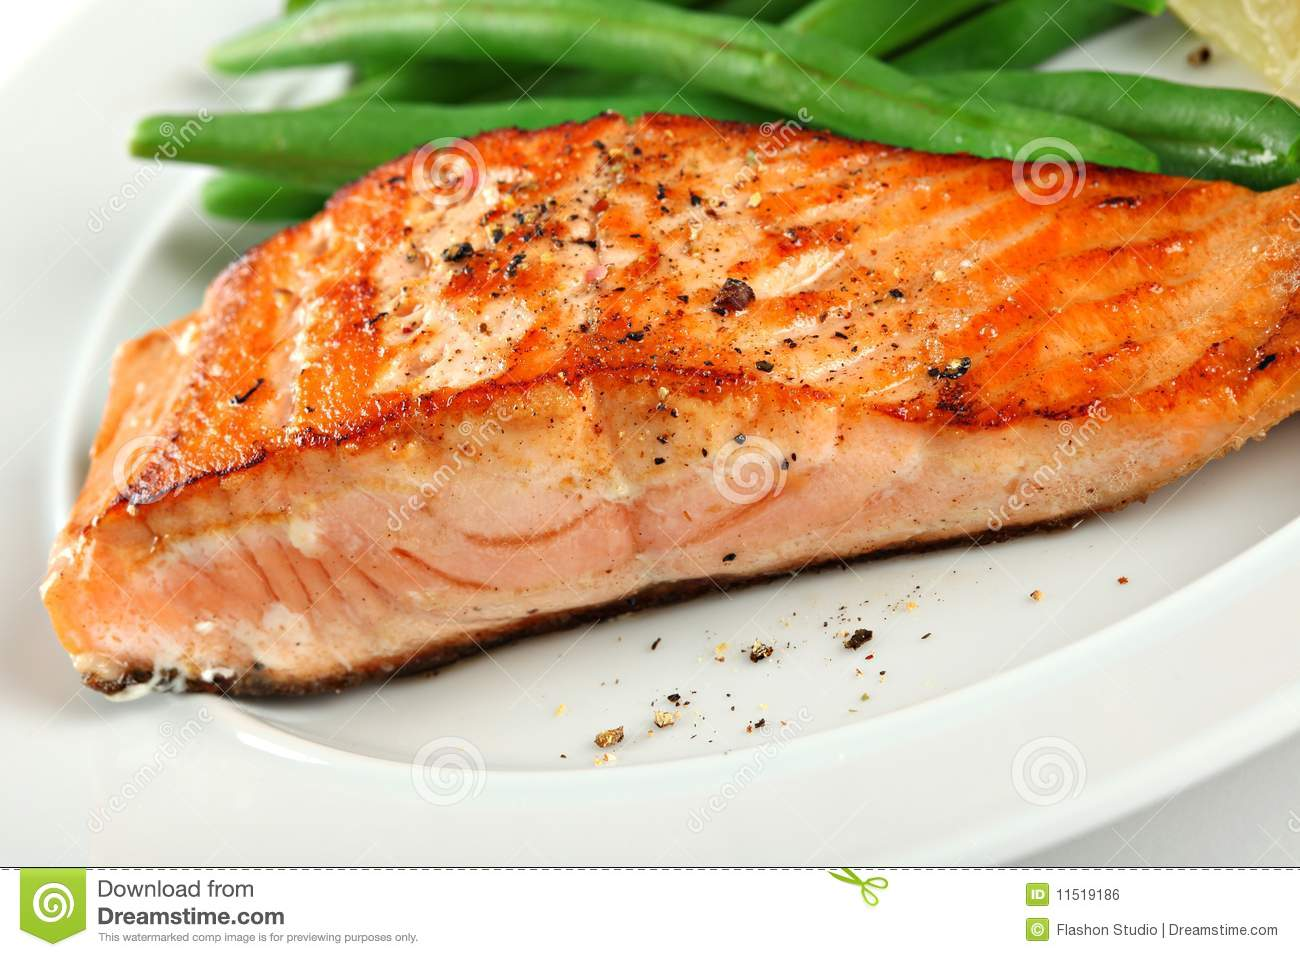 Closeup Of Grilled Salmon Fillet With Green Beans Stock Photo Image Of Cook Cuisine 11519186,How Long Are Car Seats Good For